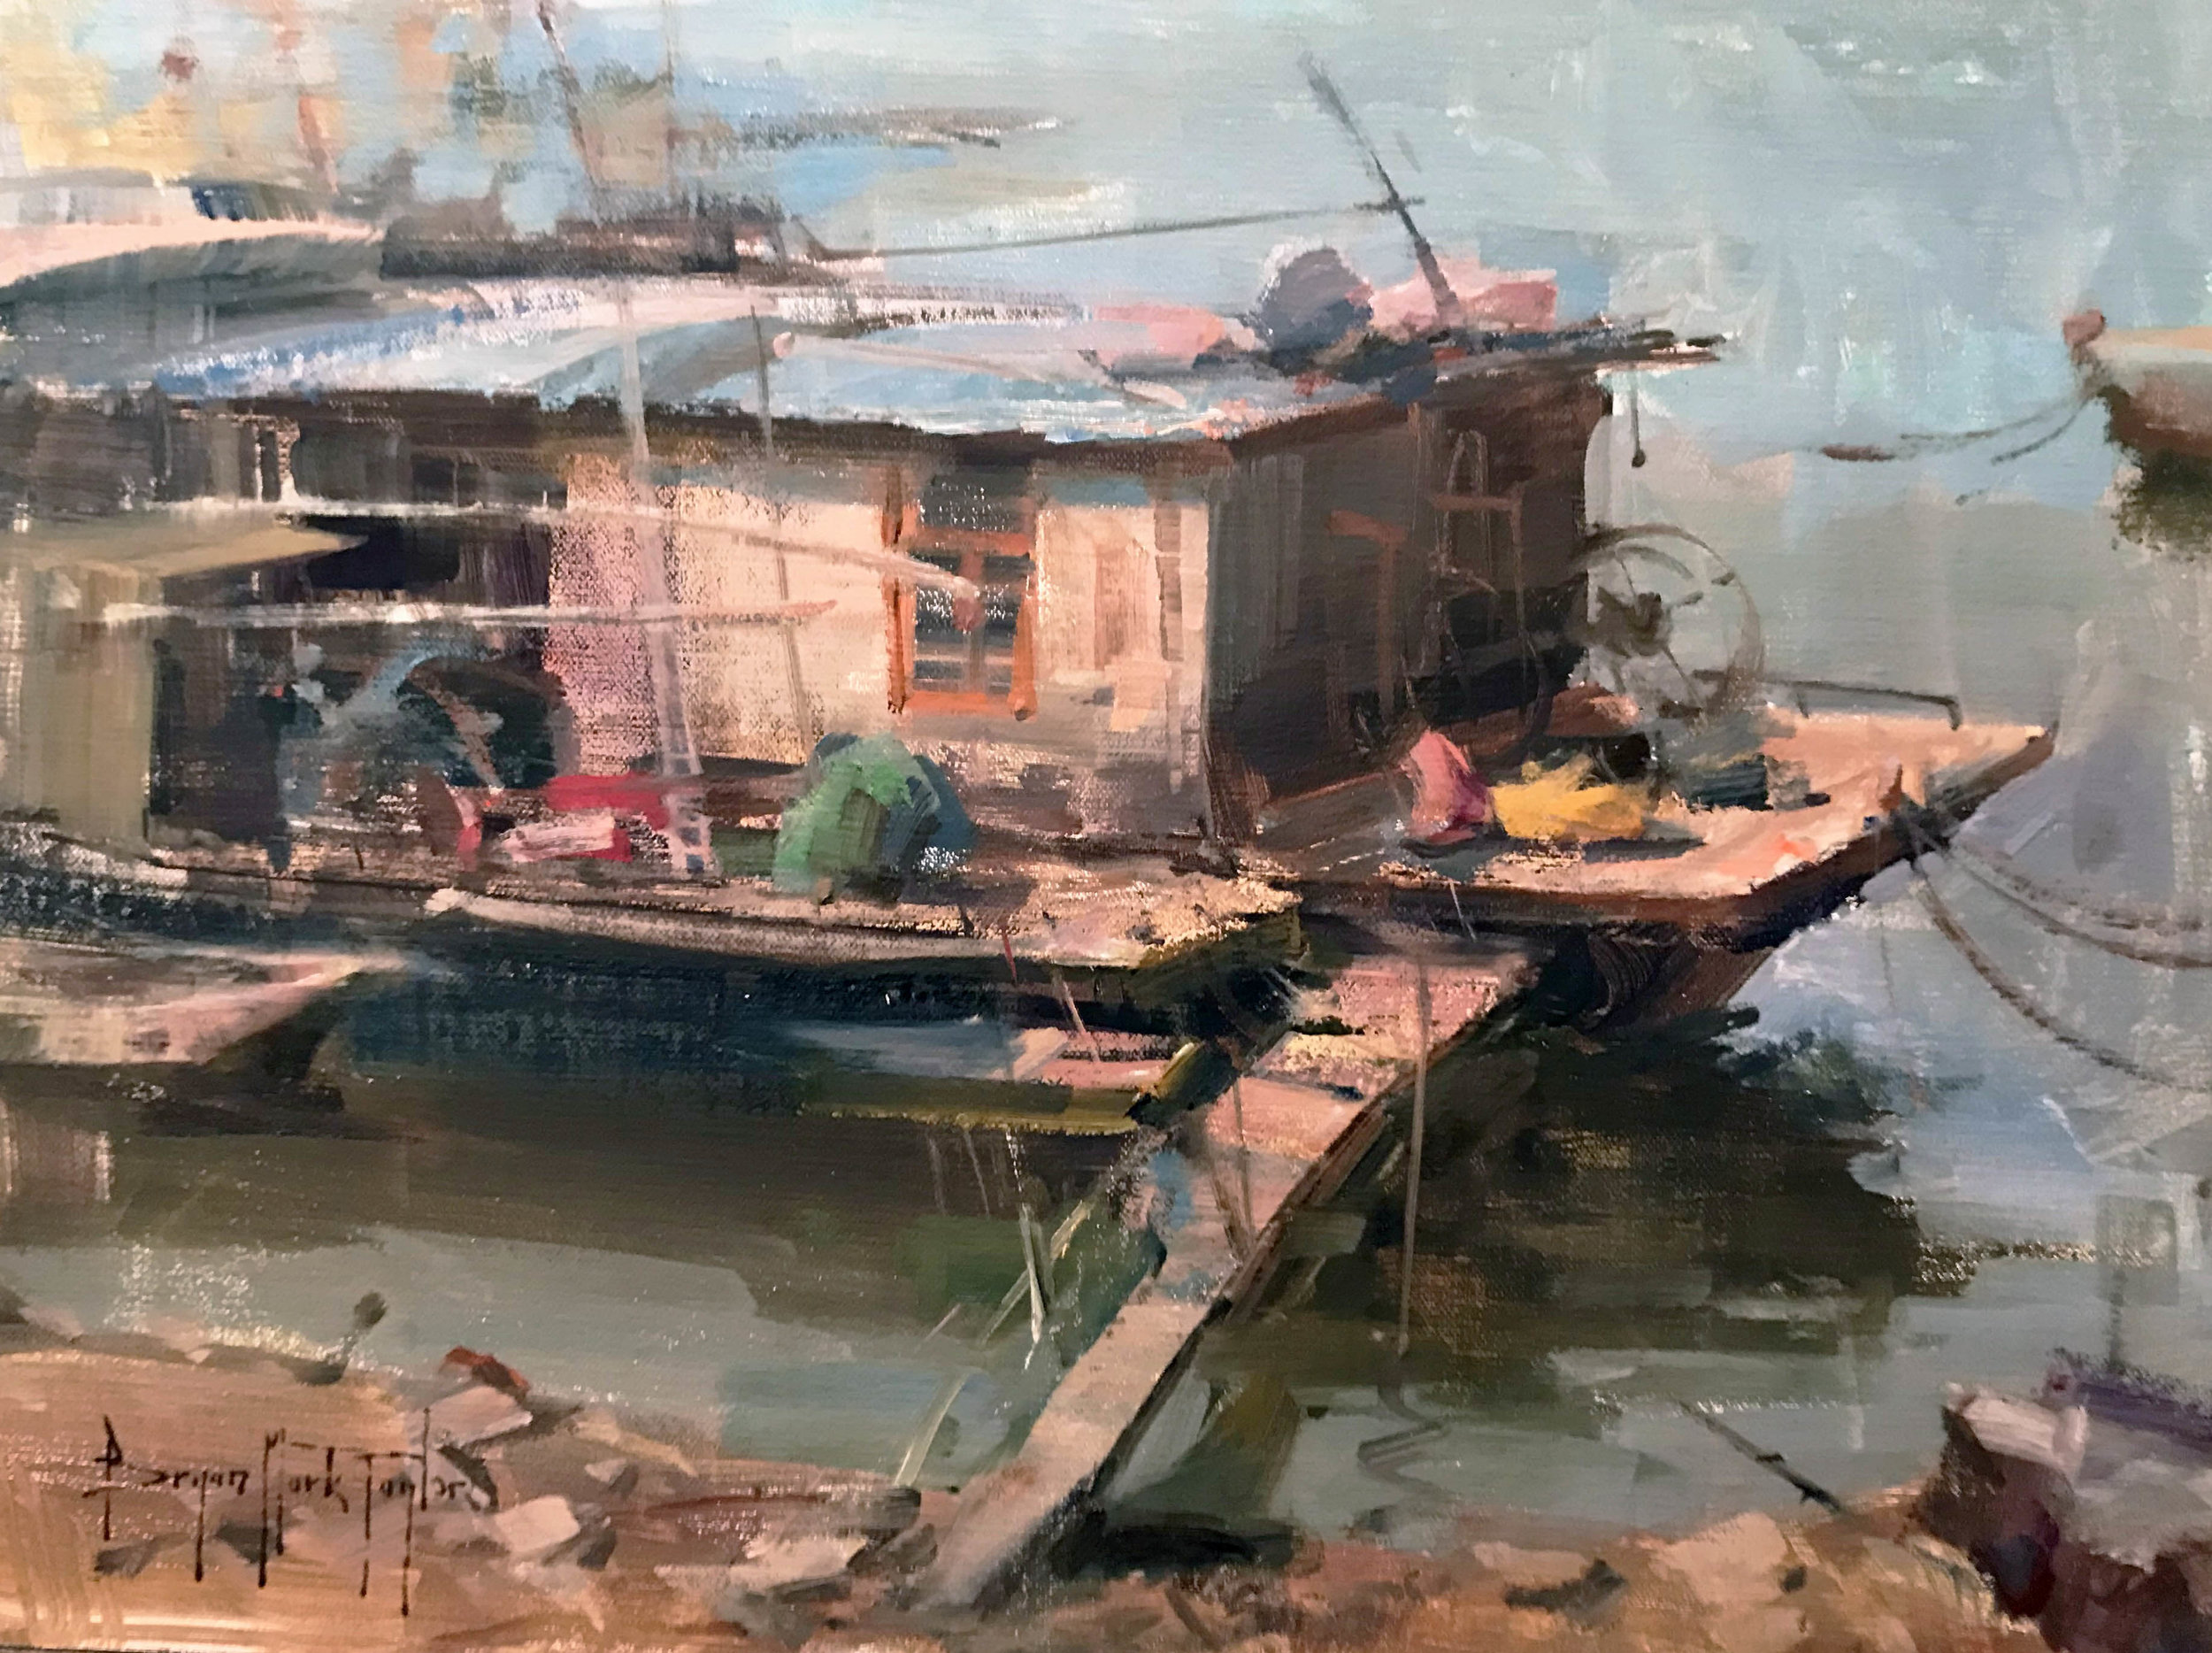 Bryan Mark Taylor. Tanka House Boat (2017) Oil on panel. 11 x 14 in.